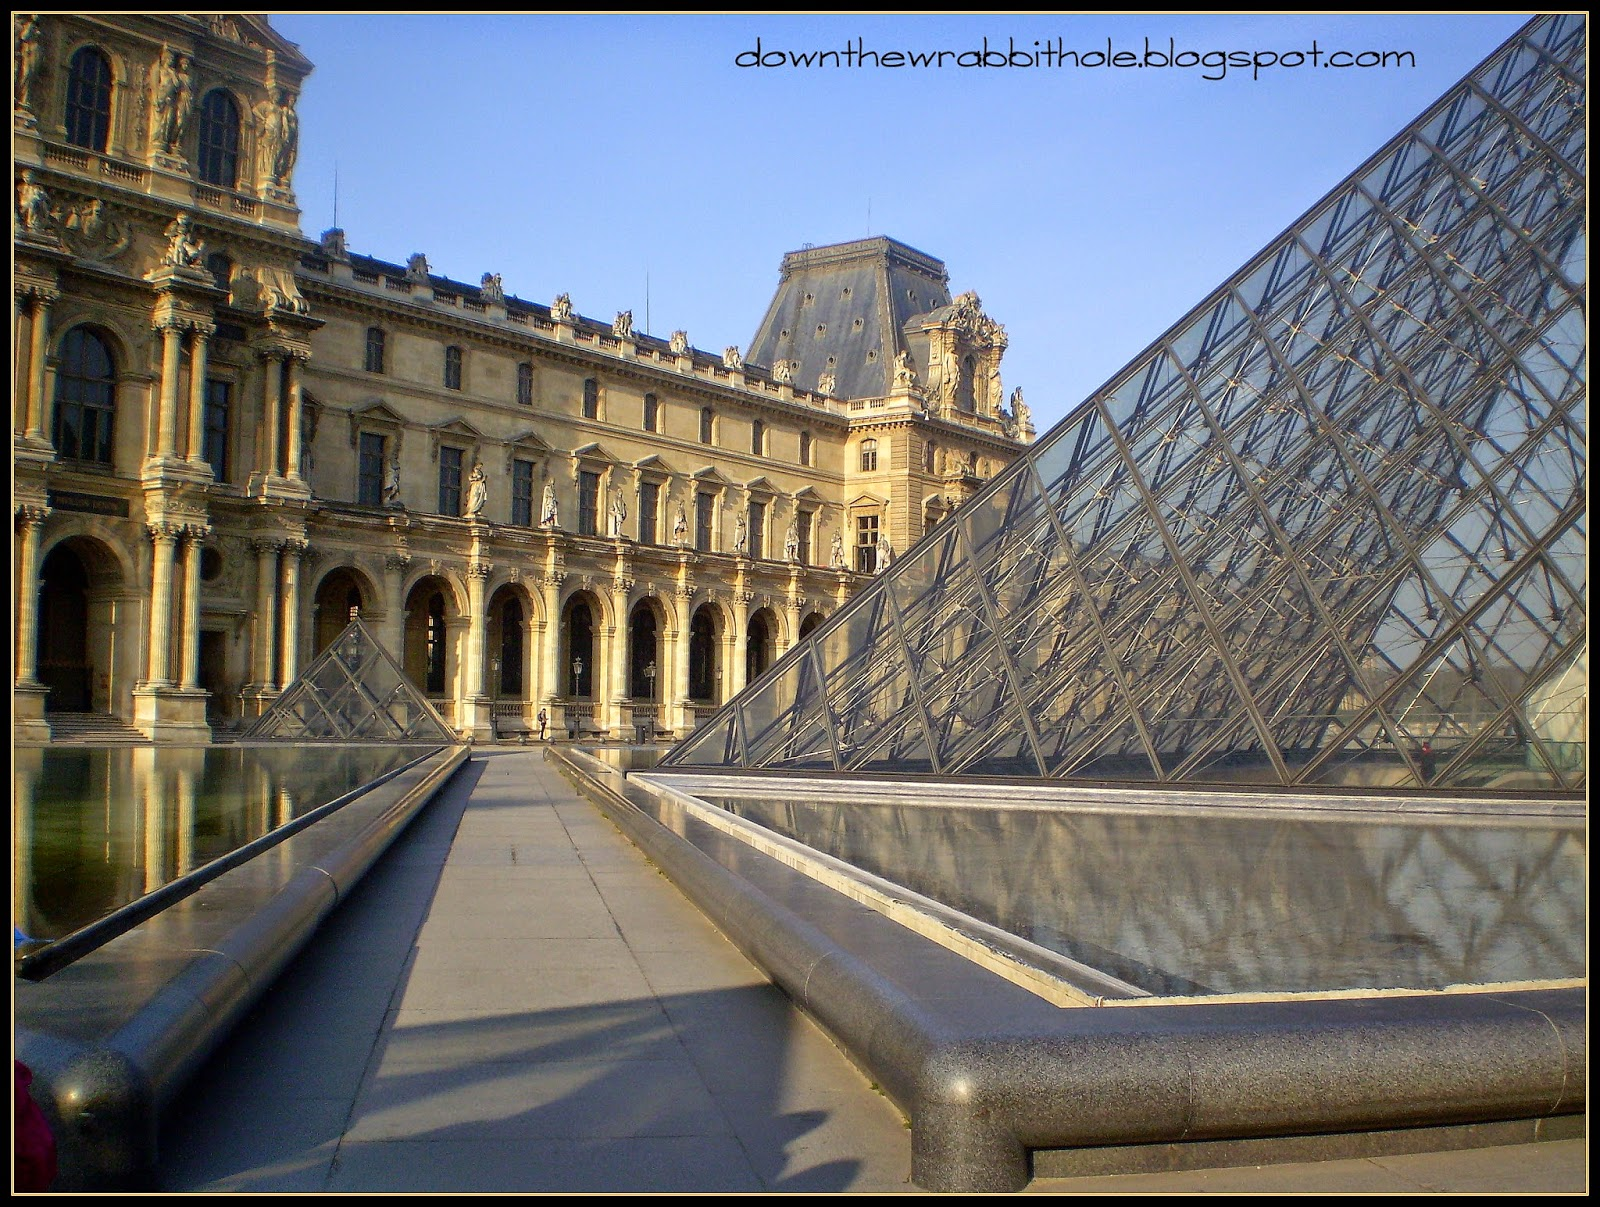 outside Louvre Museum, Louvre Museum pyramids, courtyard Paris France